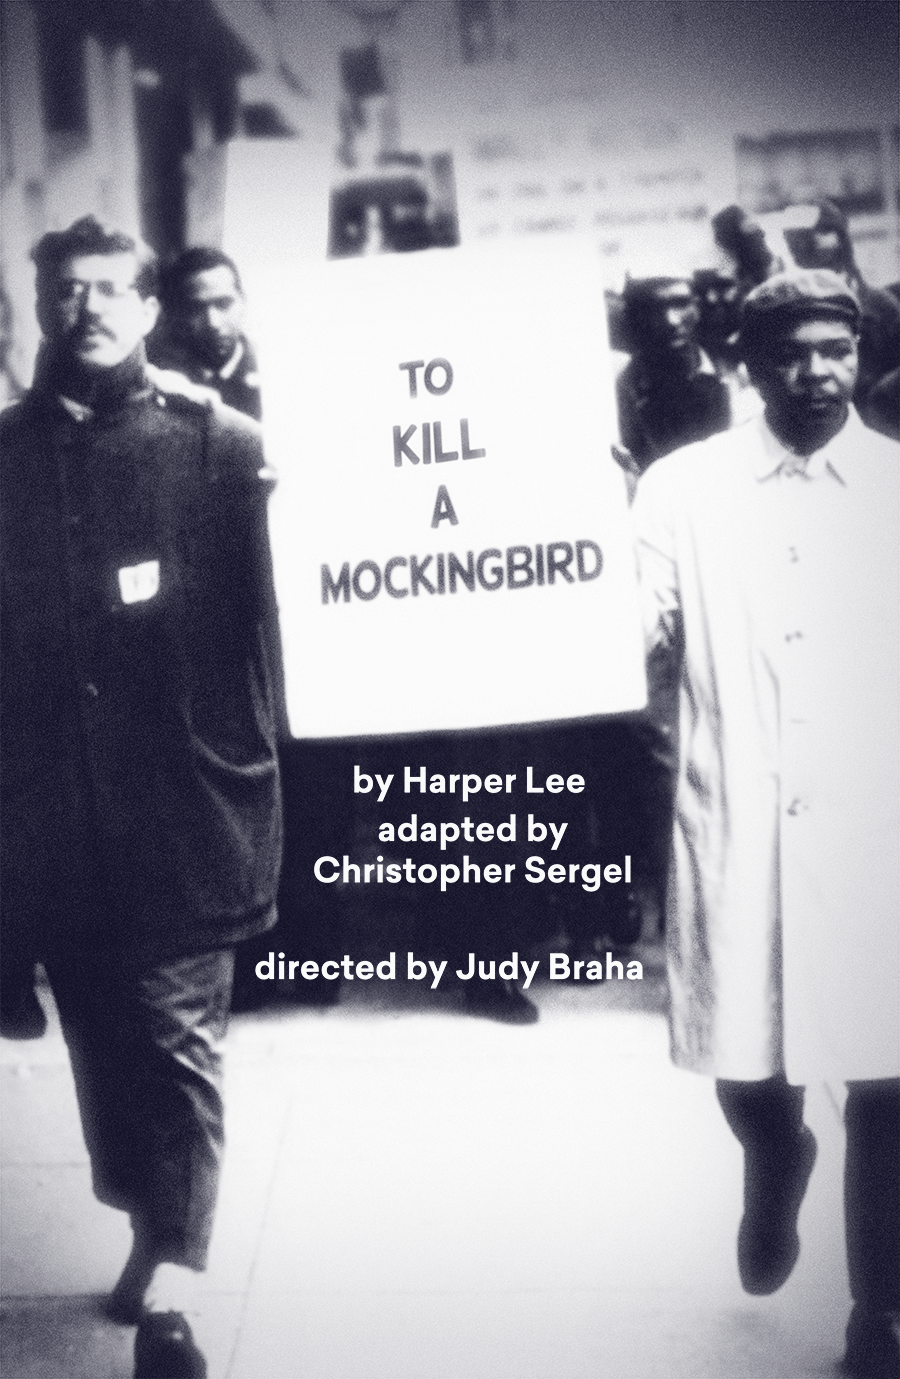 an analysis of harper lees to kill a mockingbird published in the middle of the civil rights movemen